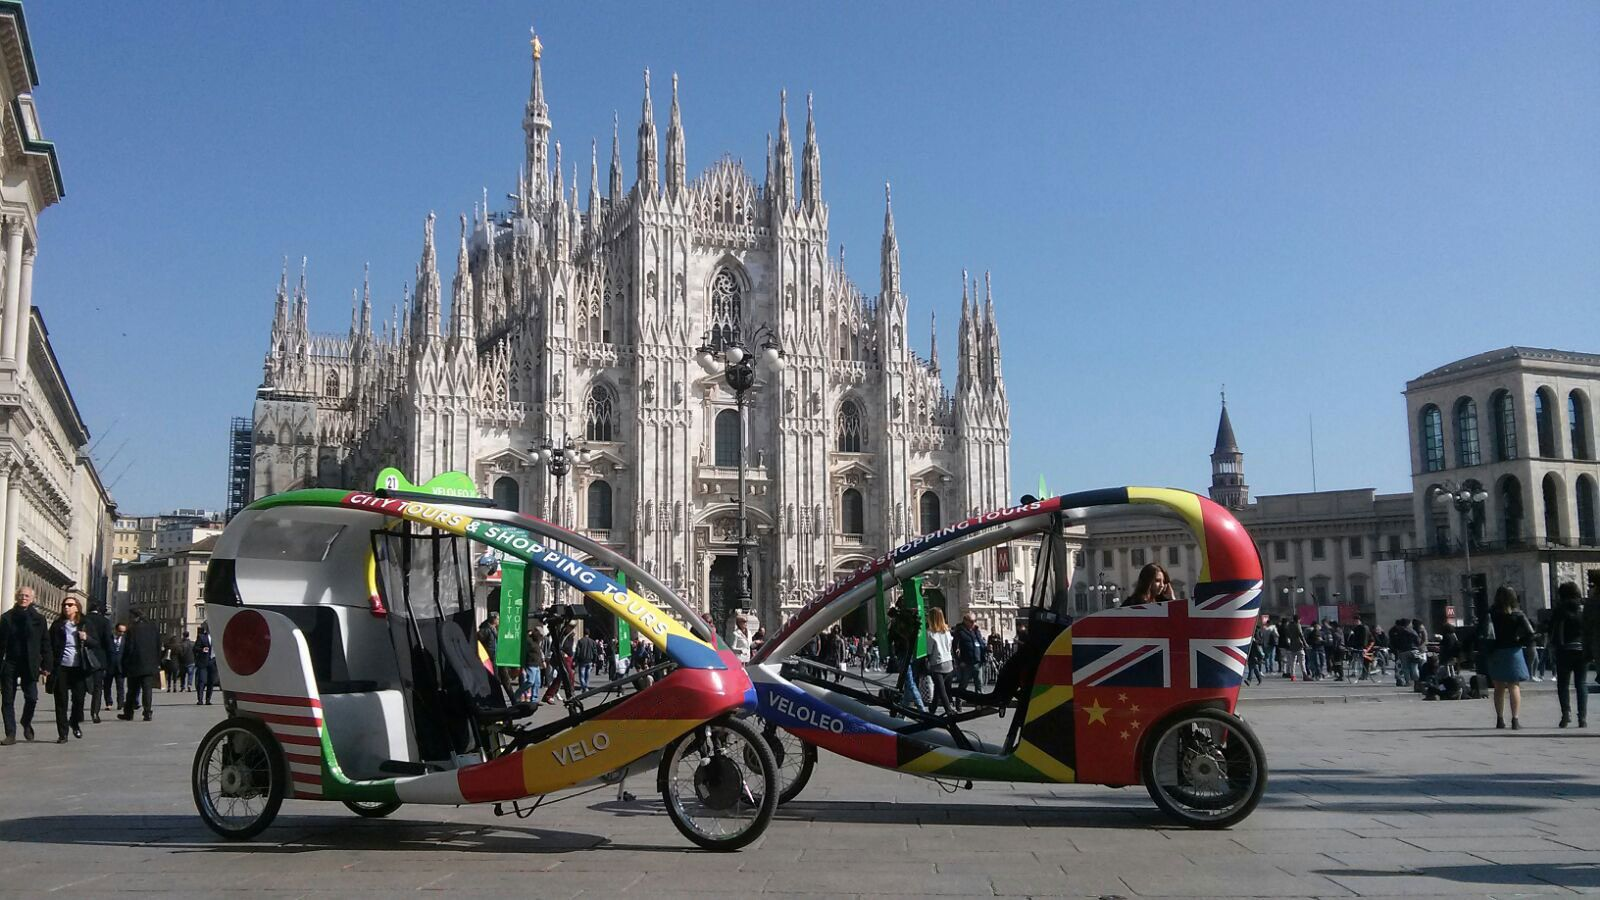 Pair of rickshaws with cathedral in the background in Milan